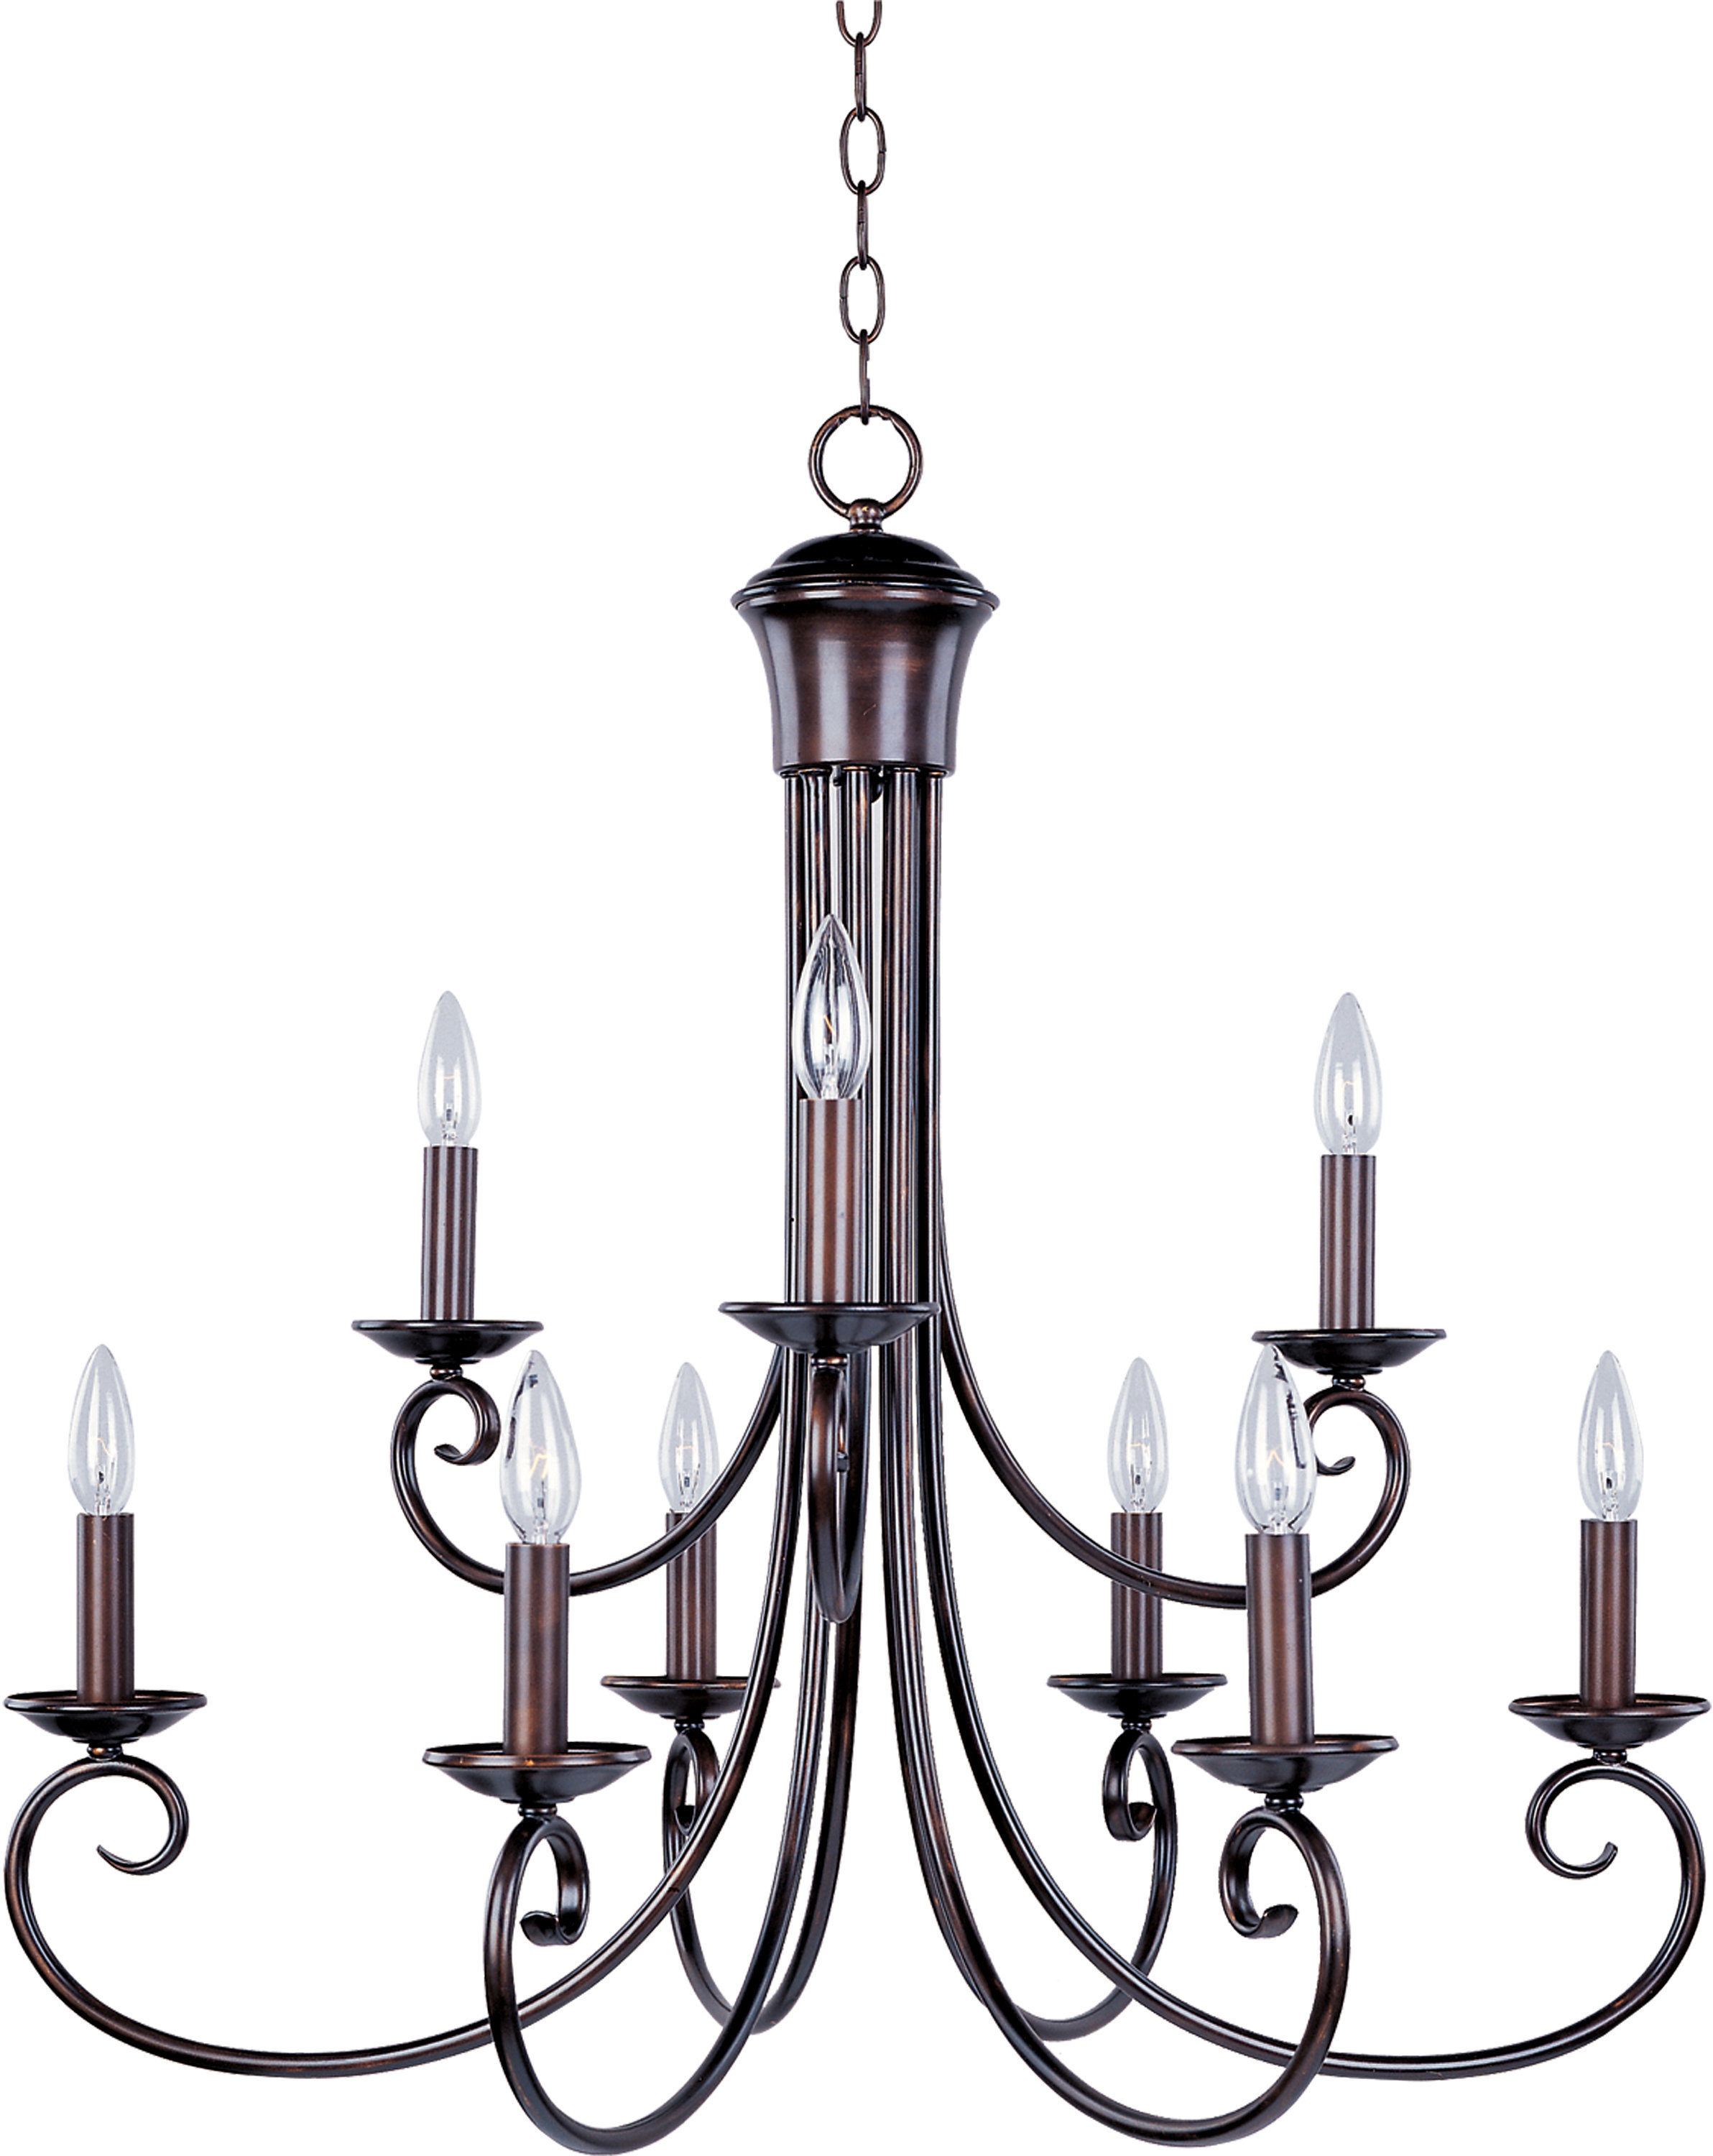 Watford 9 Light Candle Style Chandeliers Regarding Well Liked Charlton Home Kenedy 9 Light Candle Style Chandelier (View 17 of 20)